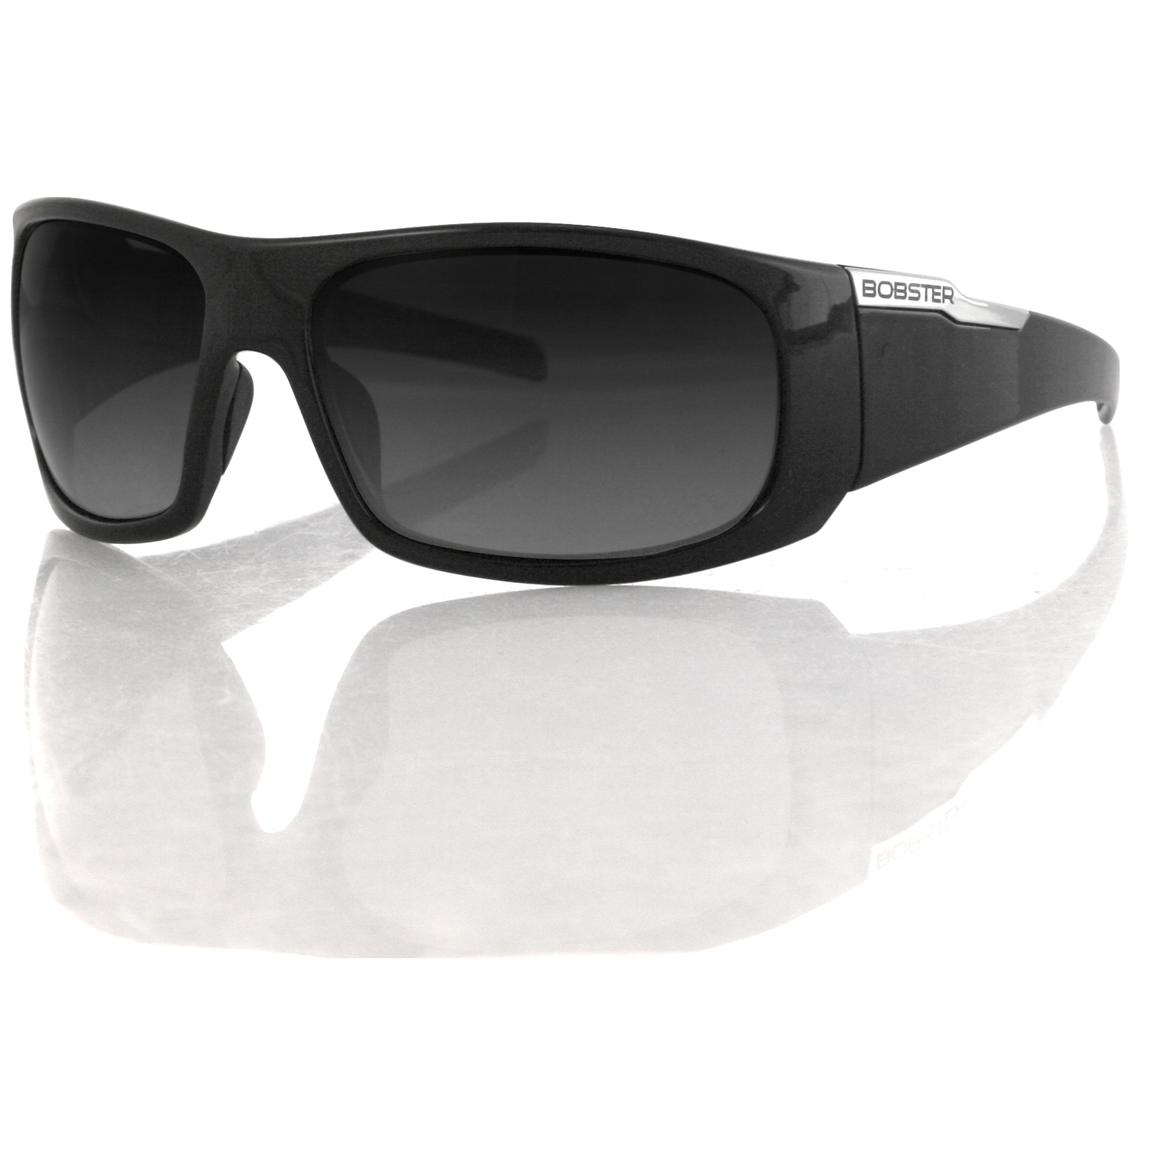 Bobster Eyewear® Sol II Polarized Sunglasses